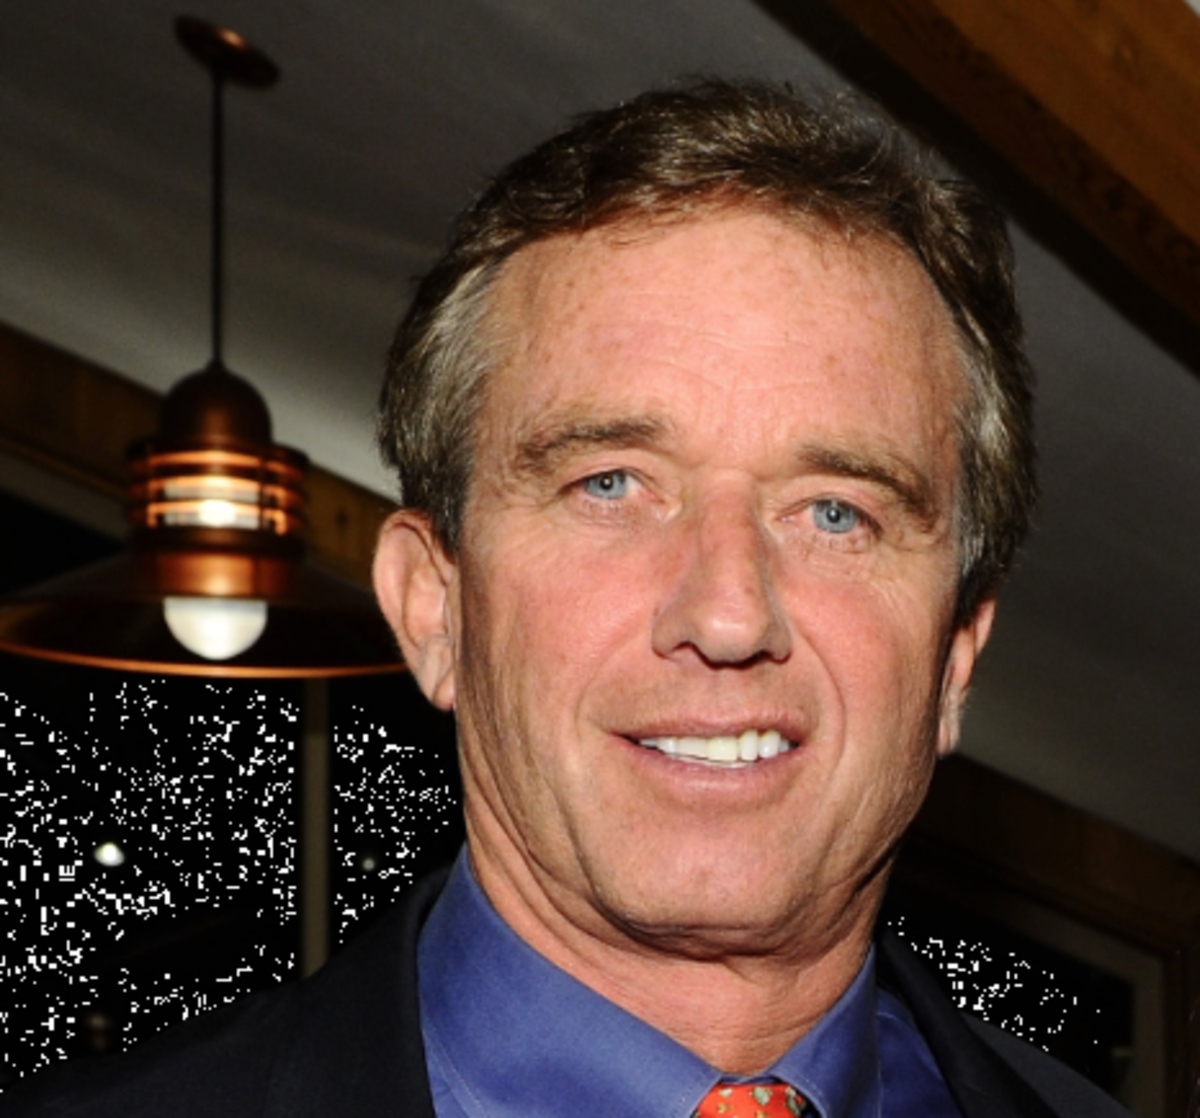 Robert F. Kennedy Jr. - Family, Career & Facts - Biography